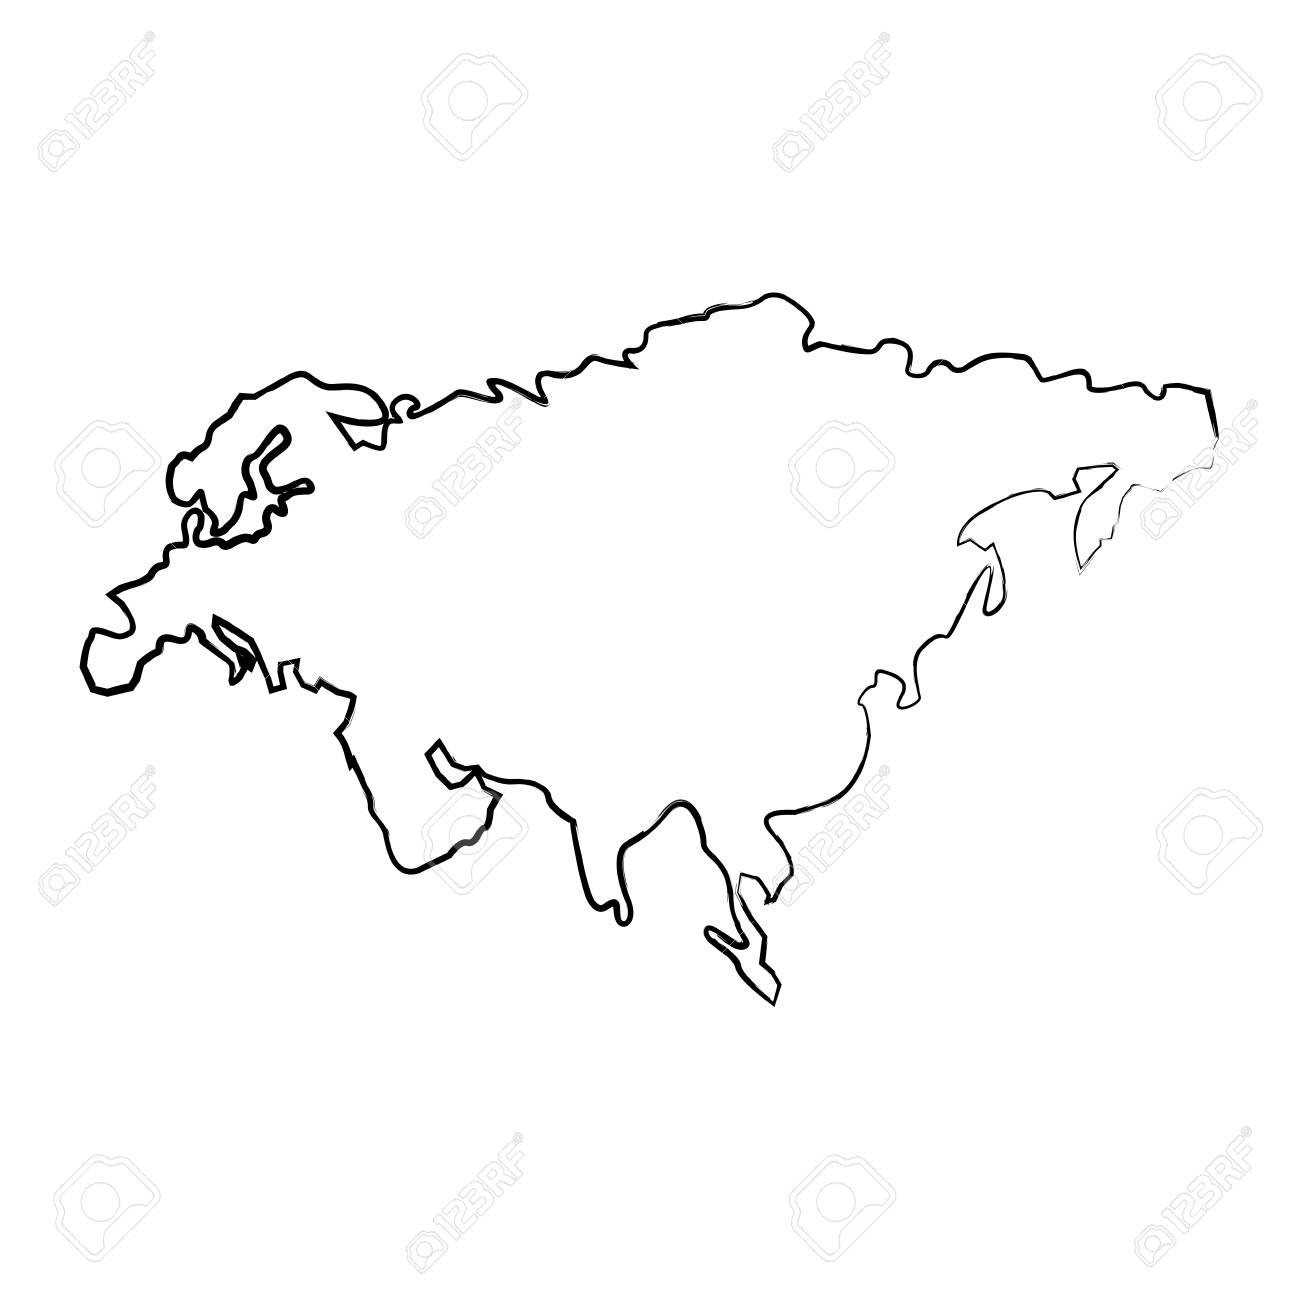 Map Of Asia Vector.Map Of Asia Continent Territory Silhouette Vector Illustration